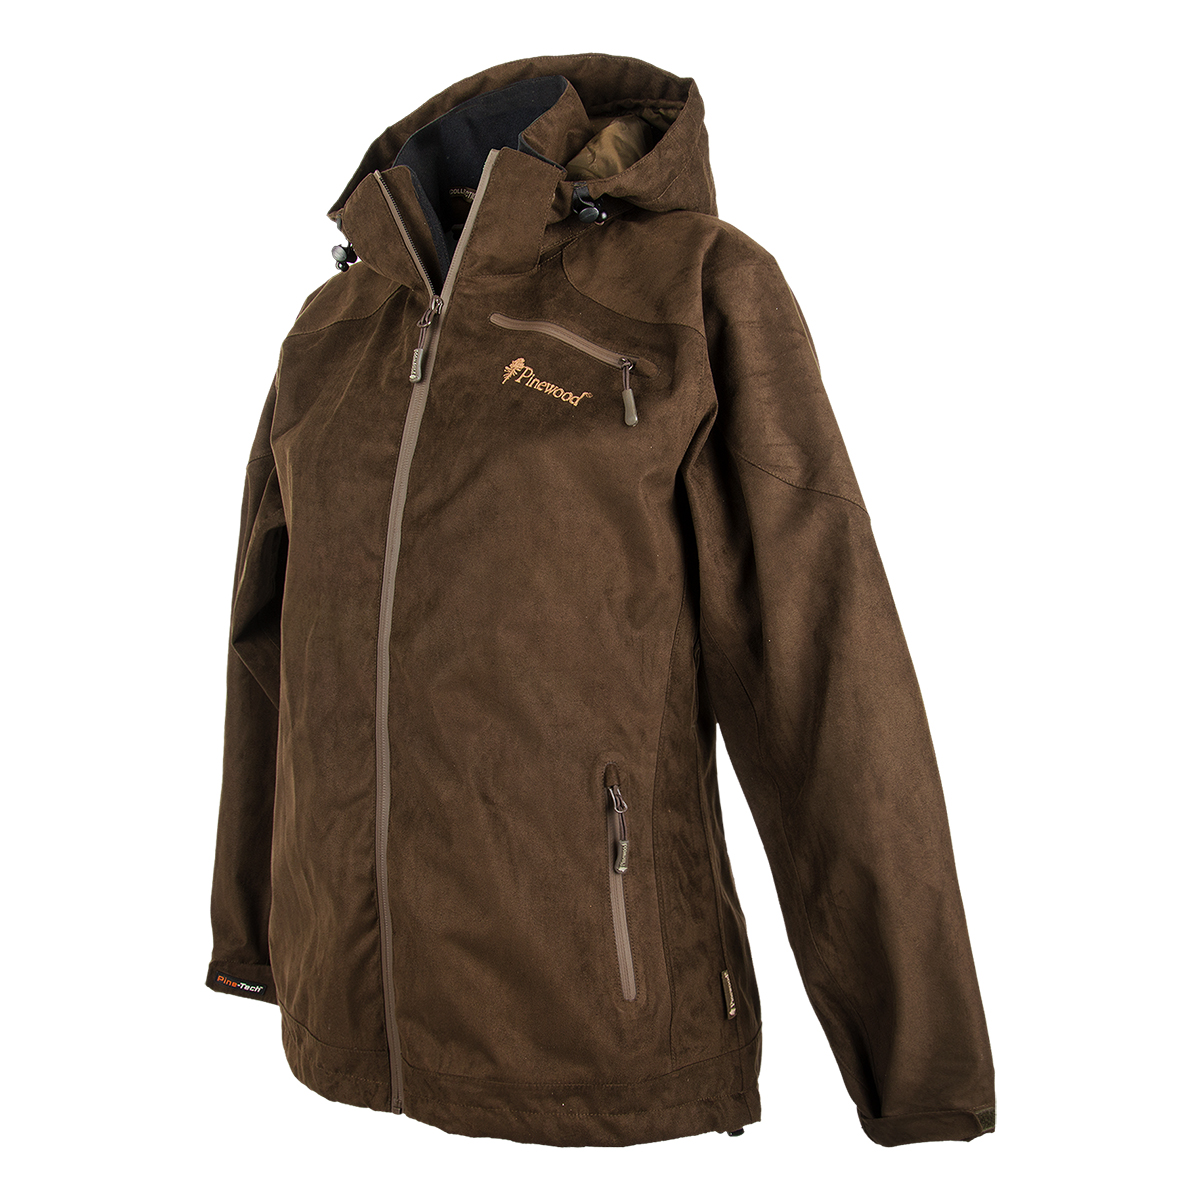 Pinewood Damenjacke Grouse Suede Braun im Pareyshop